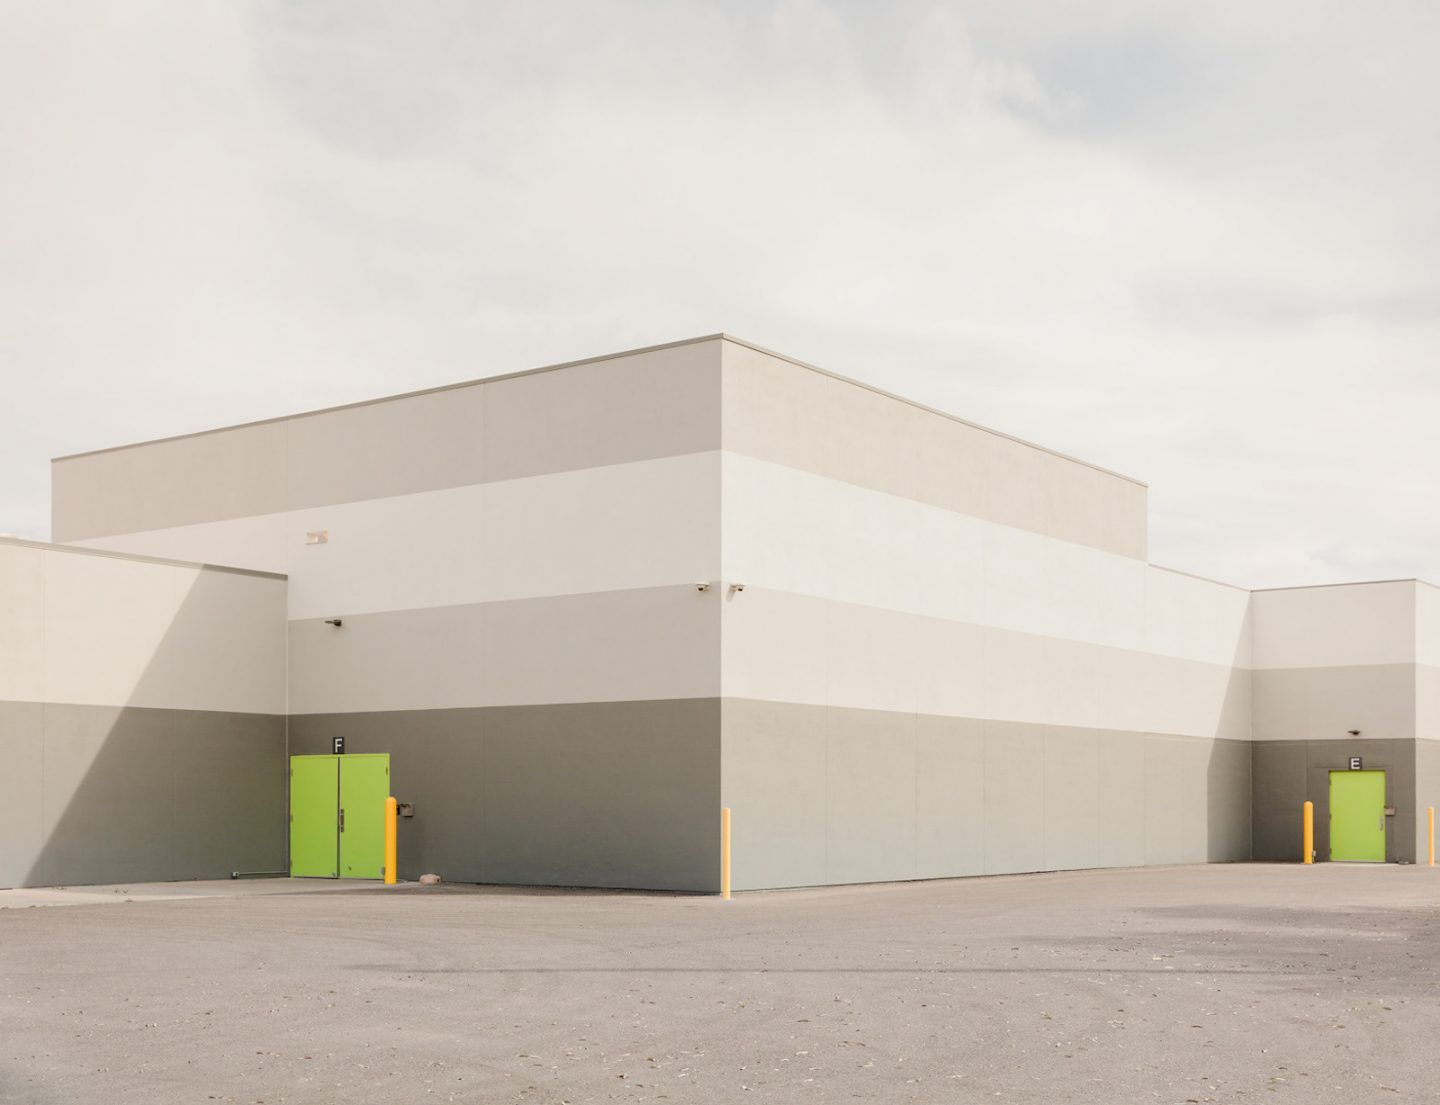 iGNANT-Photography-Jesse-Rieser-The-Retail-Apocalypse-019